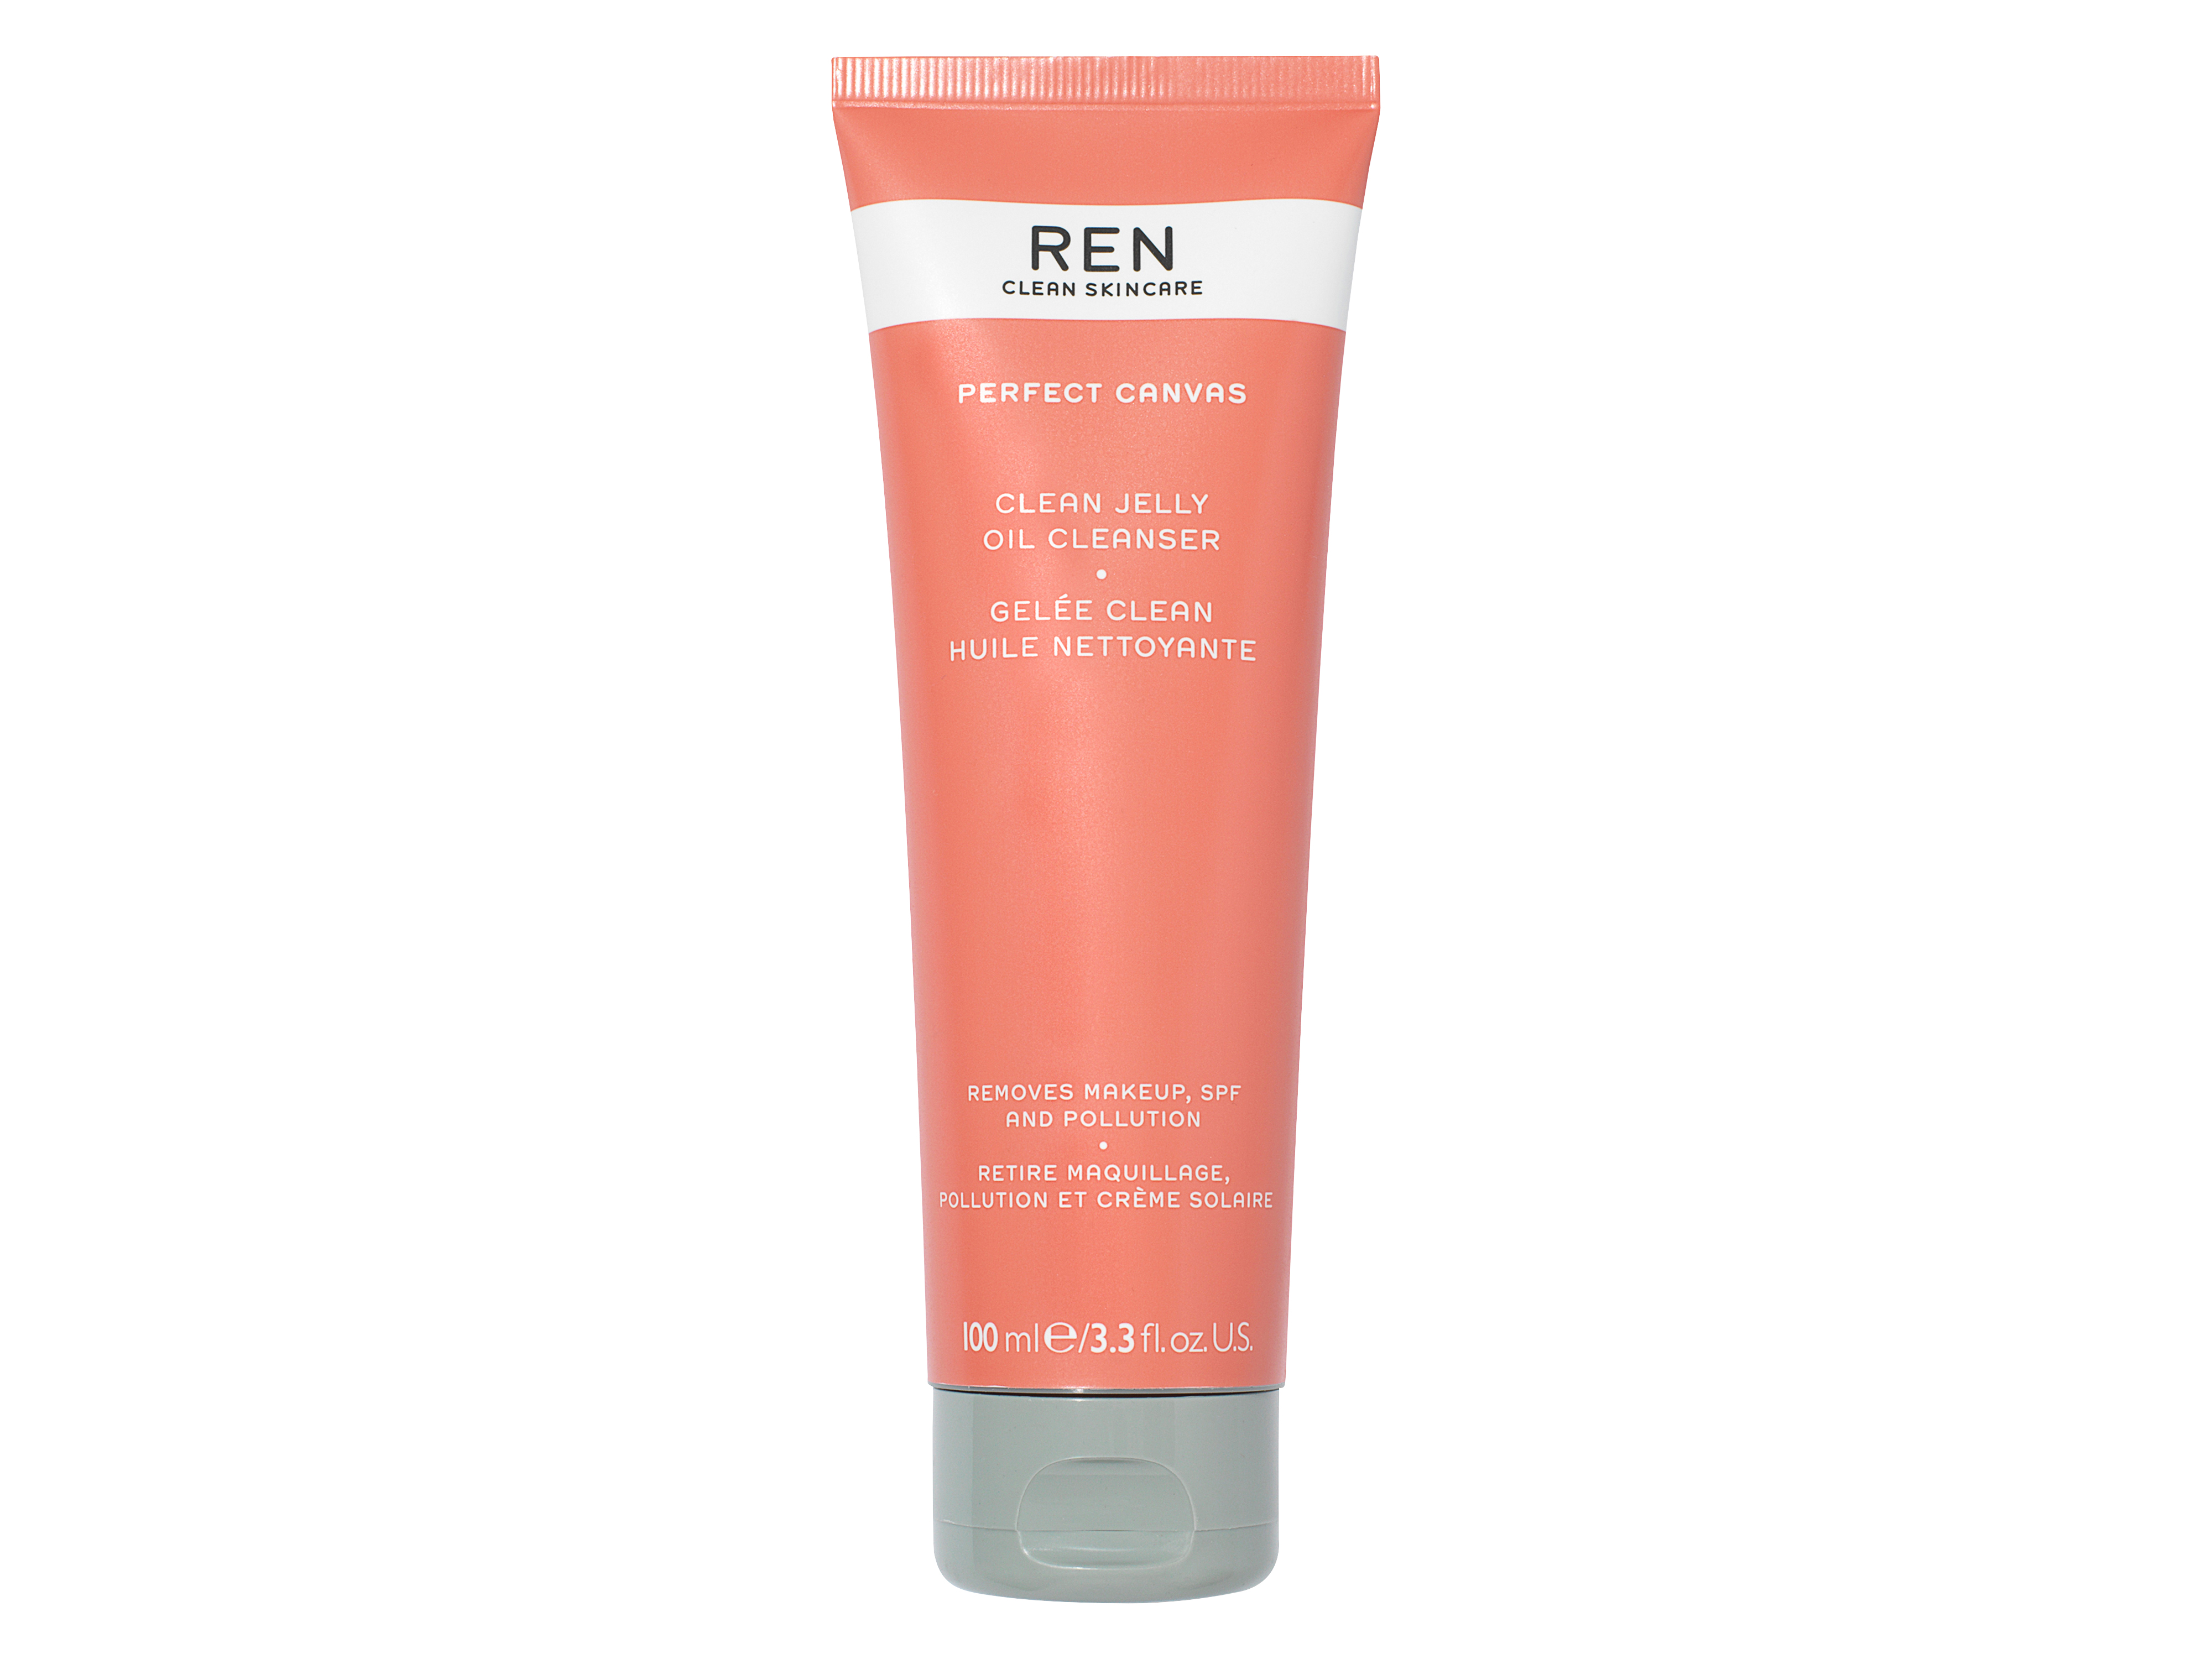 REN Perfect Canvas Jelly Oil Cleanser, 100 ml